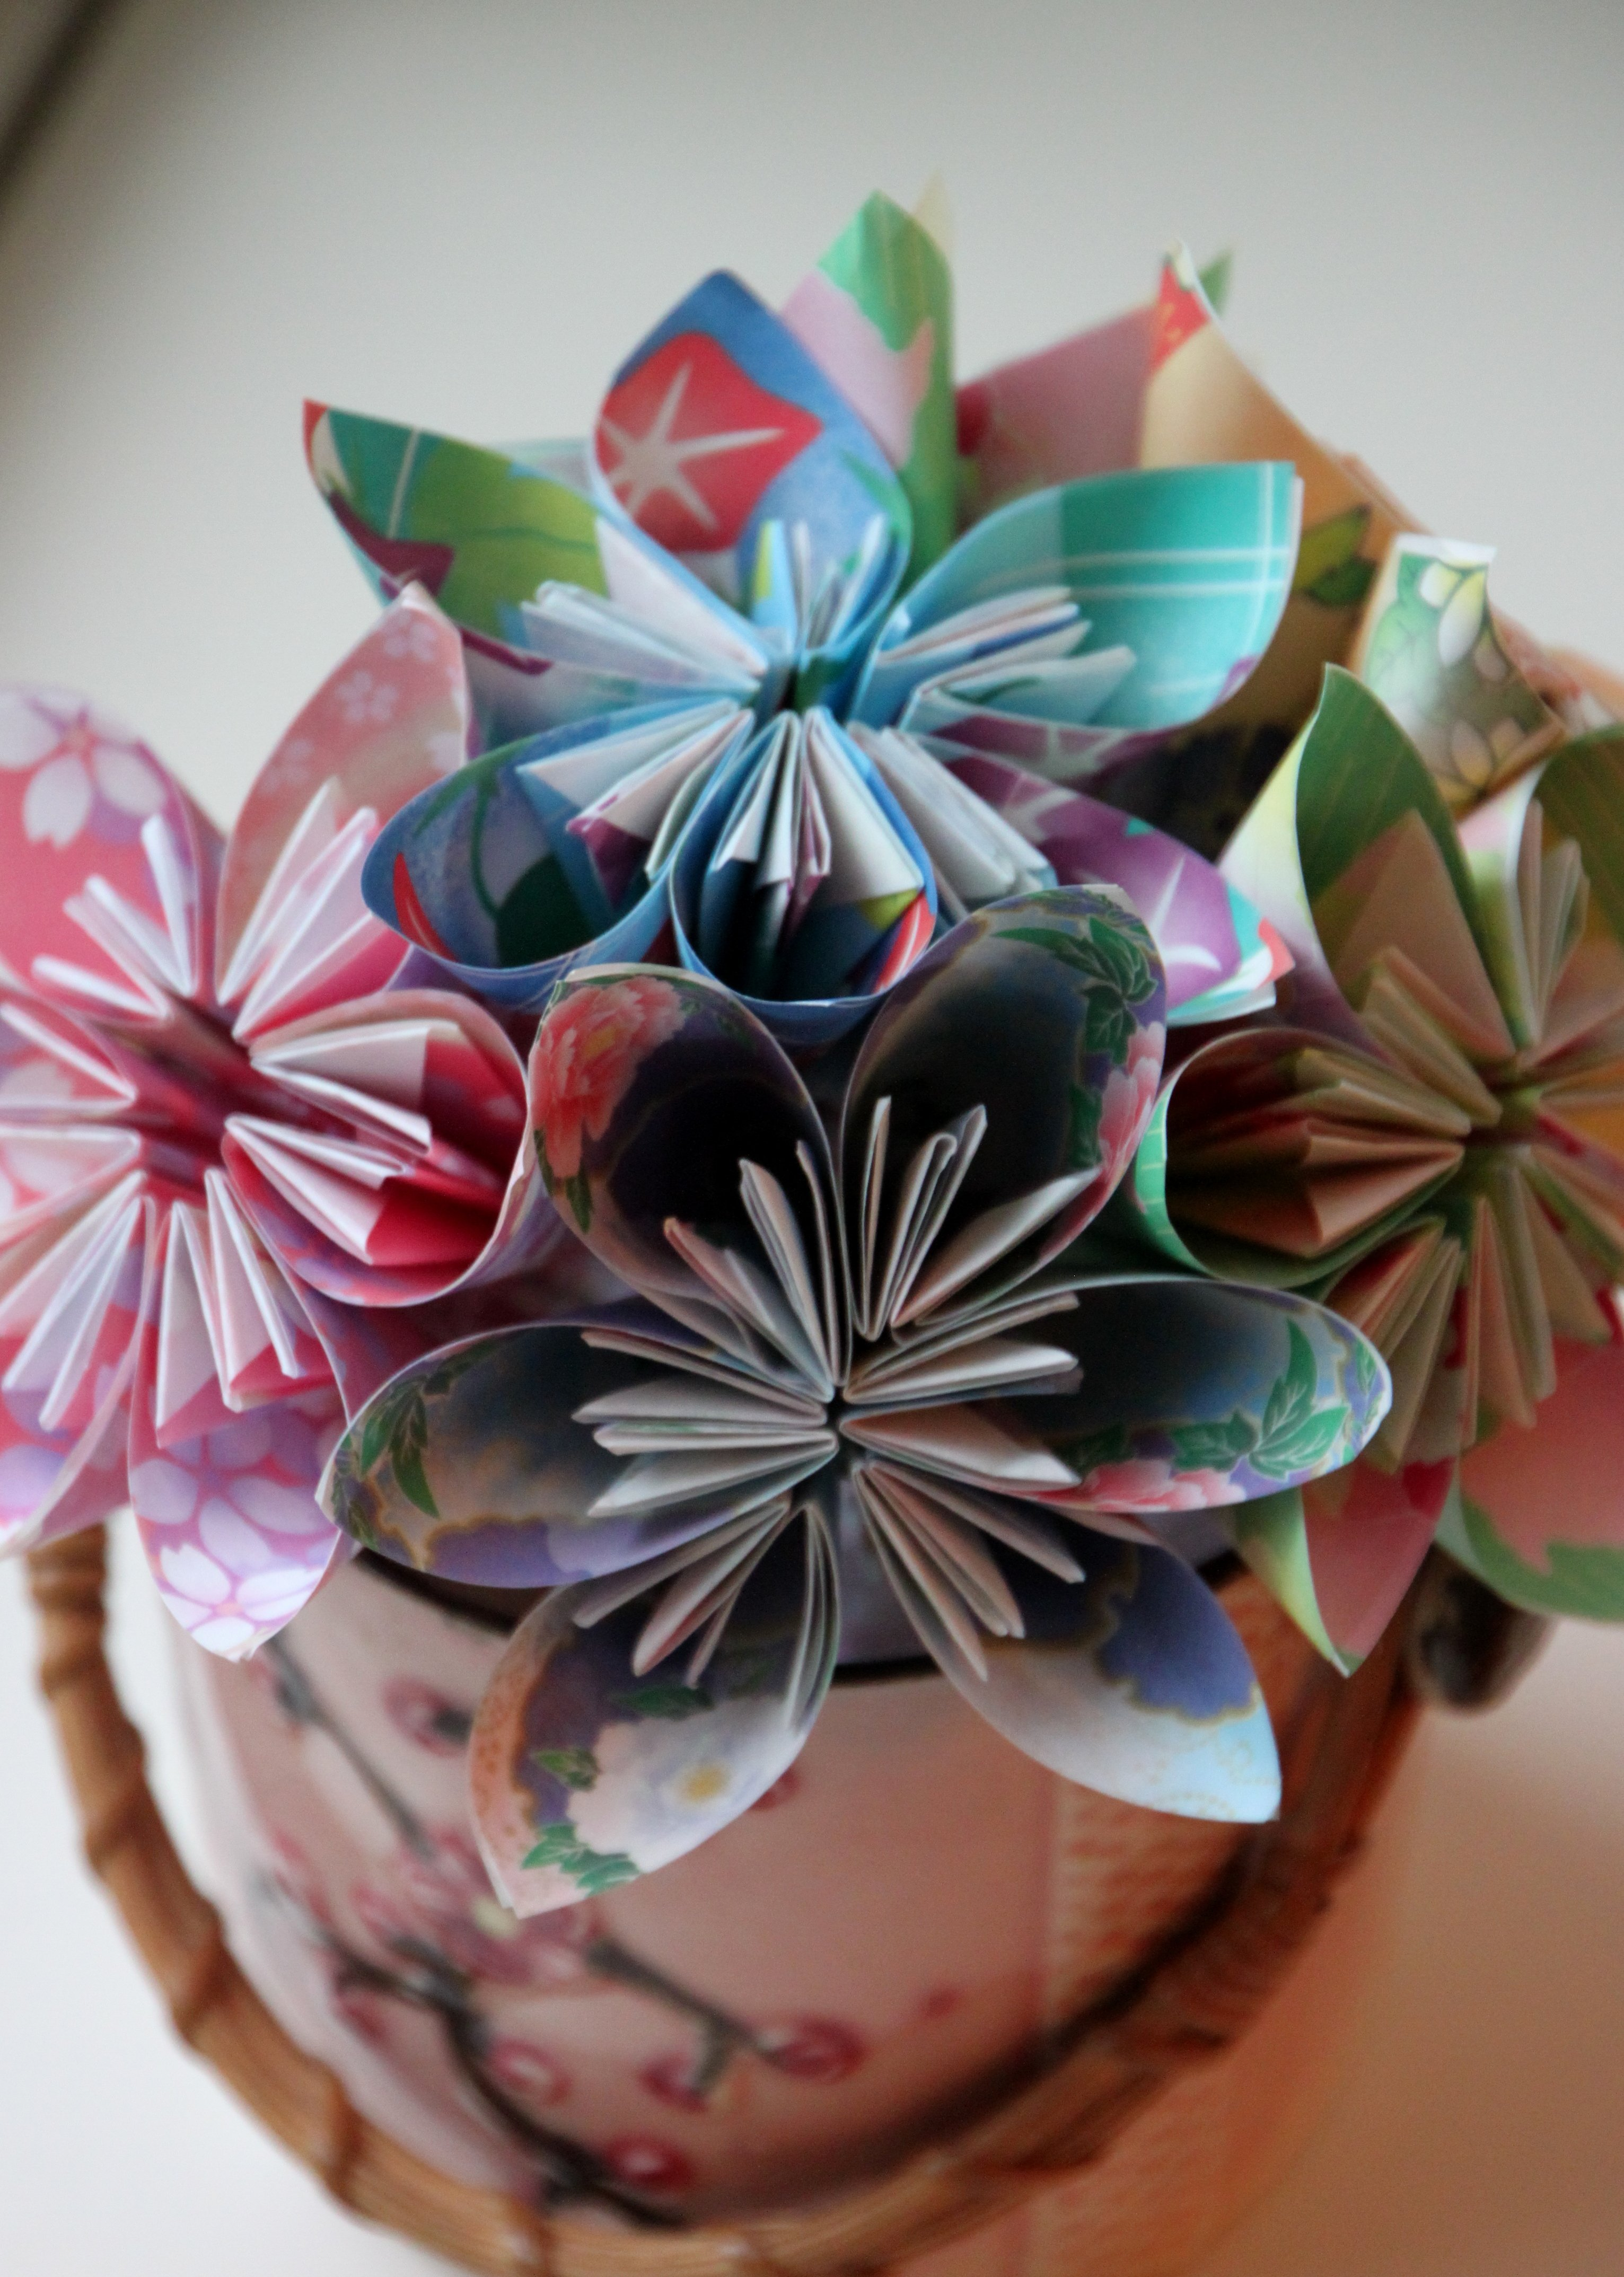 Origami Flowers | Tilly's Nest - photo#41